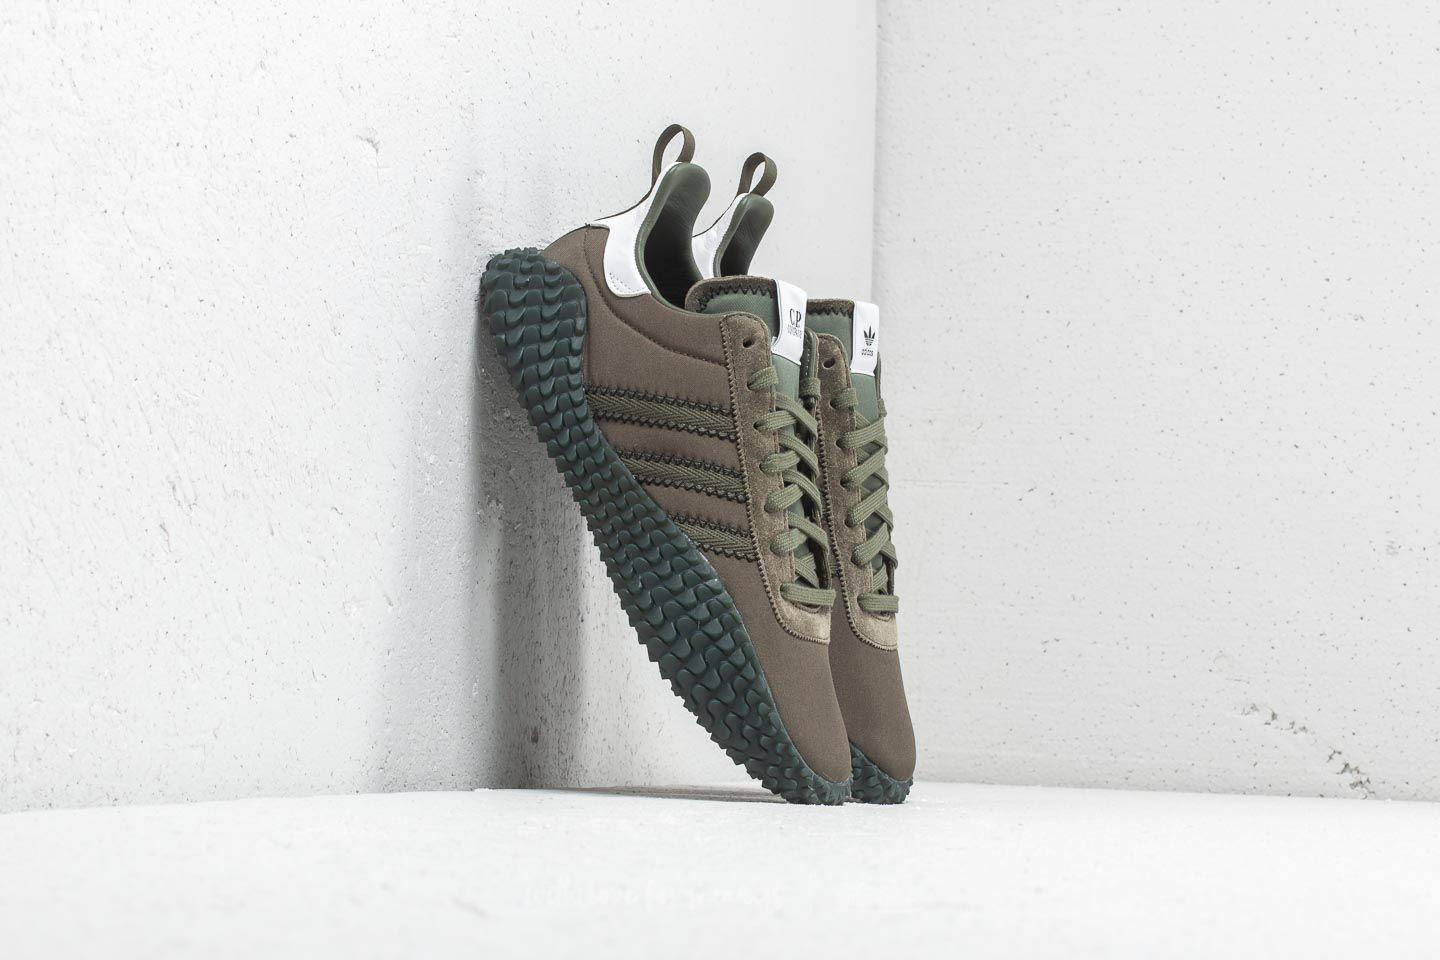 reputable site e53be a0ae8 Lyst - adidas Originals Adidas X C.p. Company Kamanda Night Cargo ...